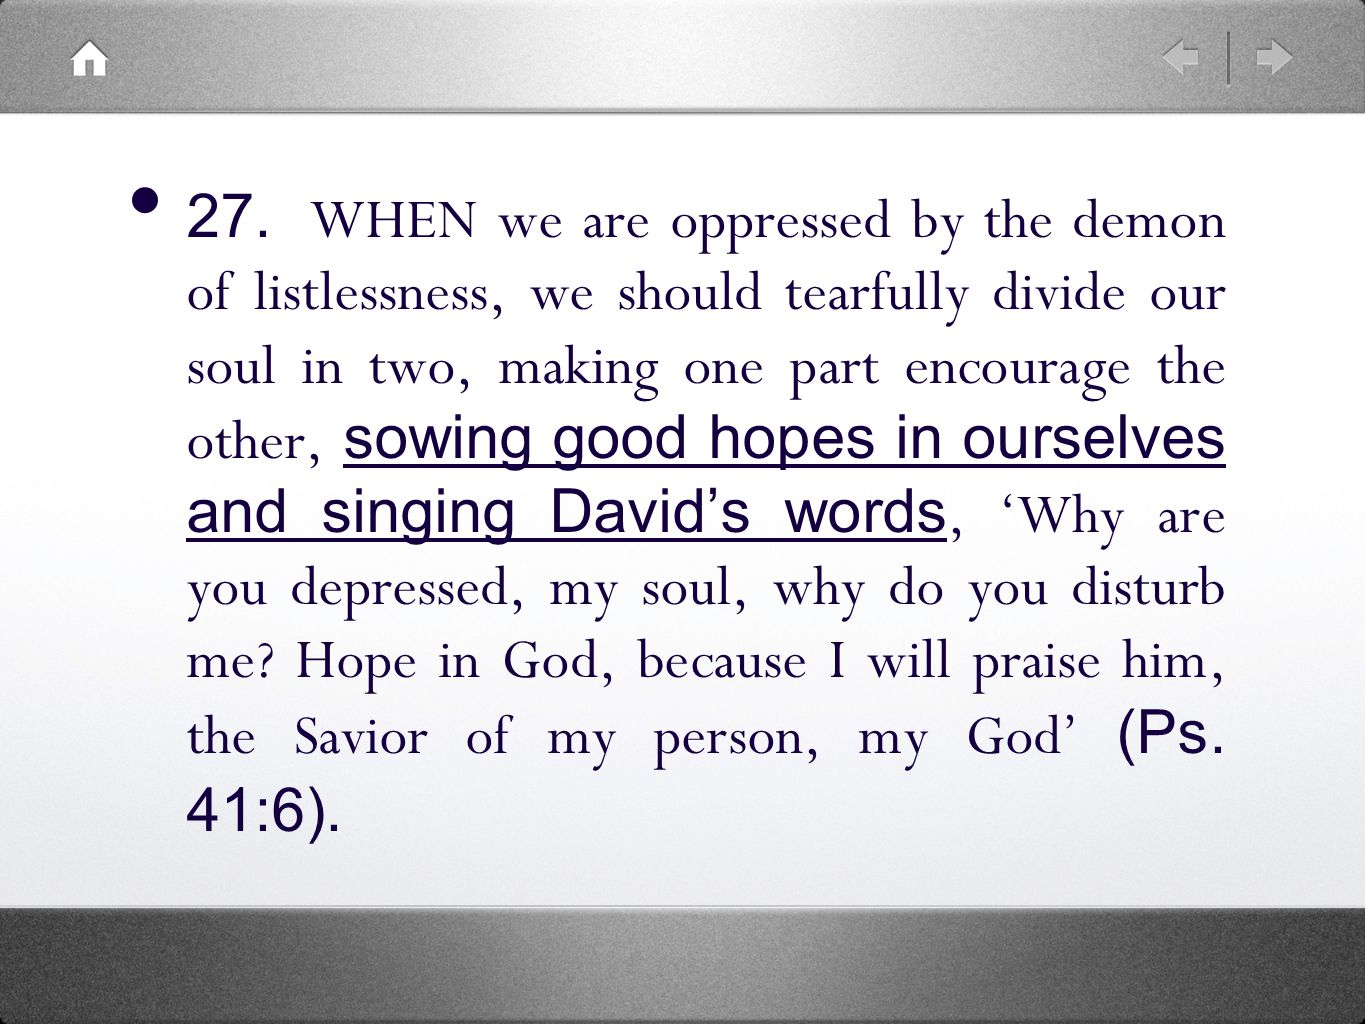 27. WHEN we are oppressed by the demon of listlessness, we should tearfully divide our soul in two, making one part encourage the other, sowing good h